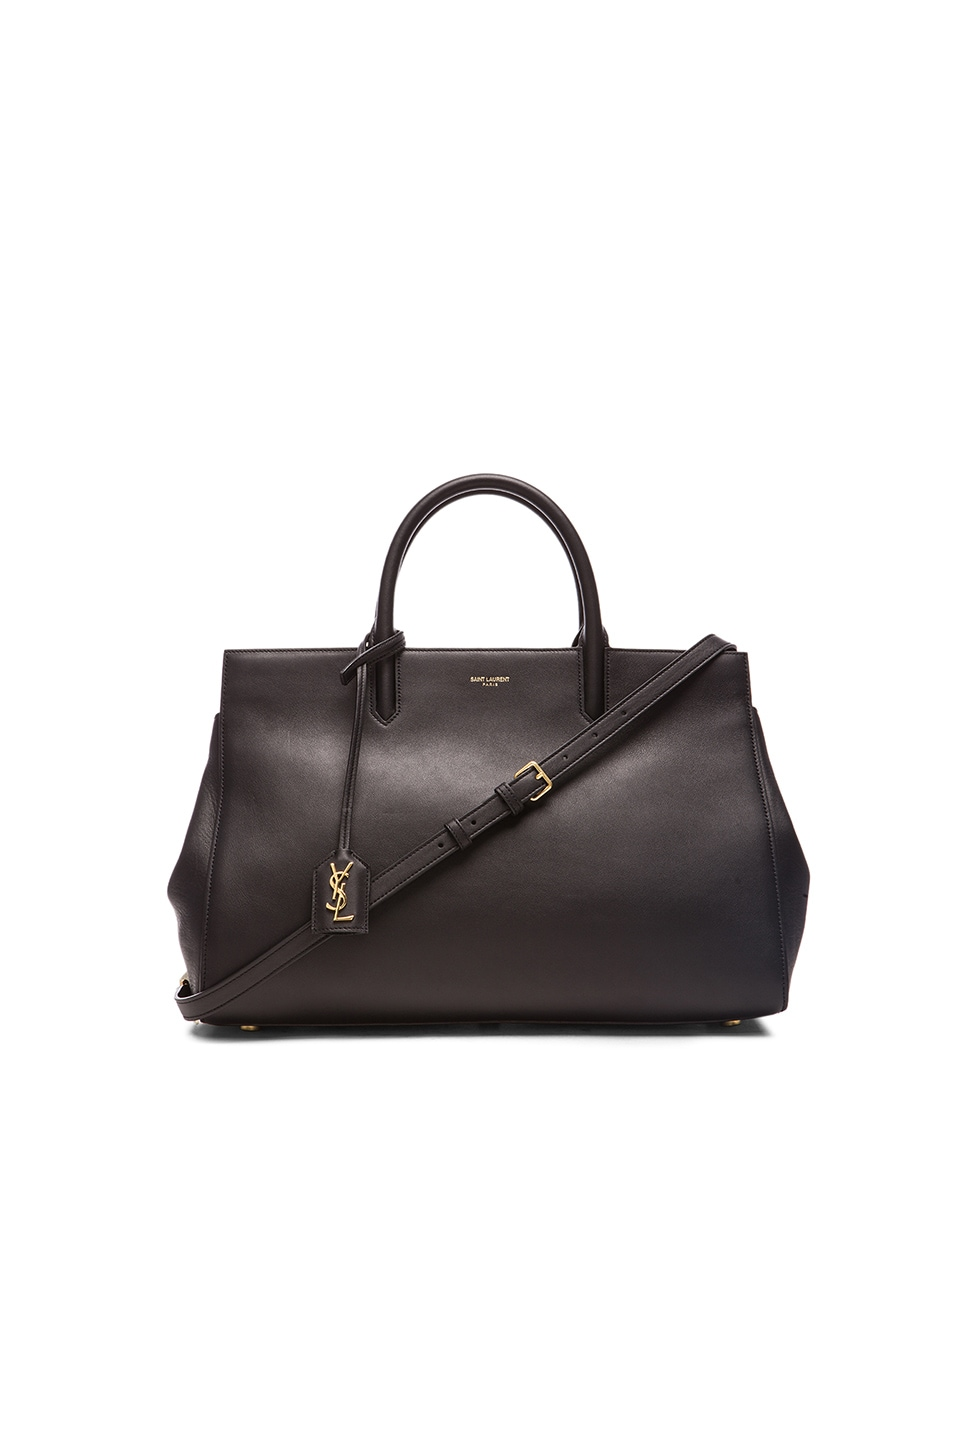 Image 1 of Saint Laurent Medium Monogramme Cabas Bag in Black